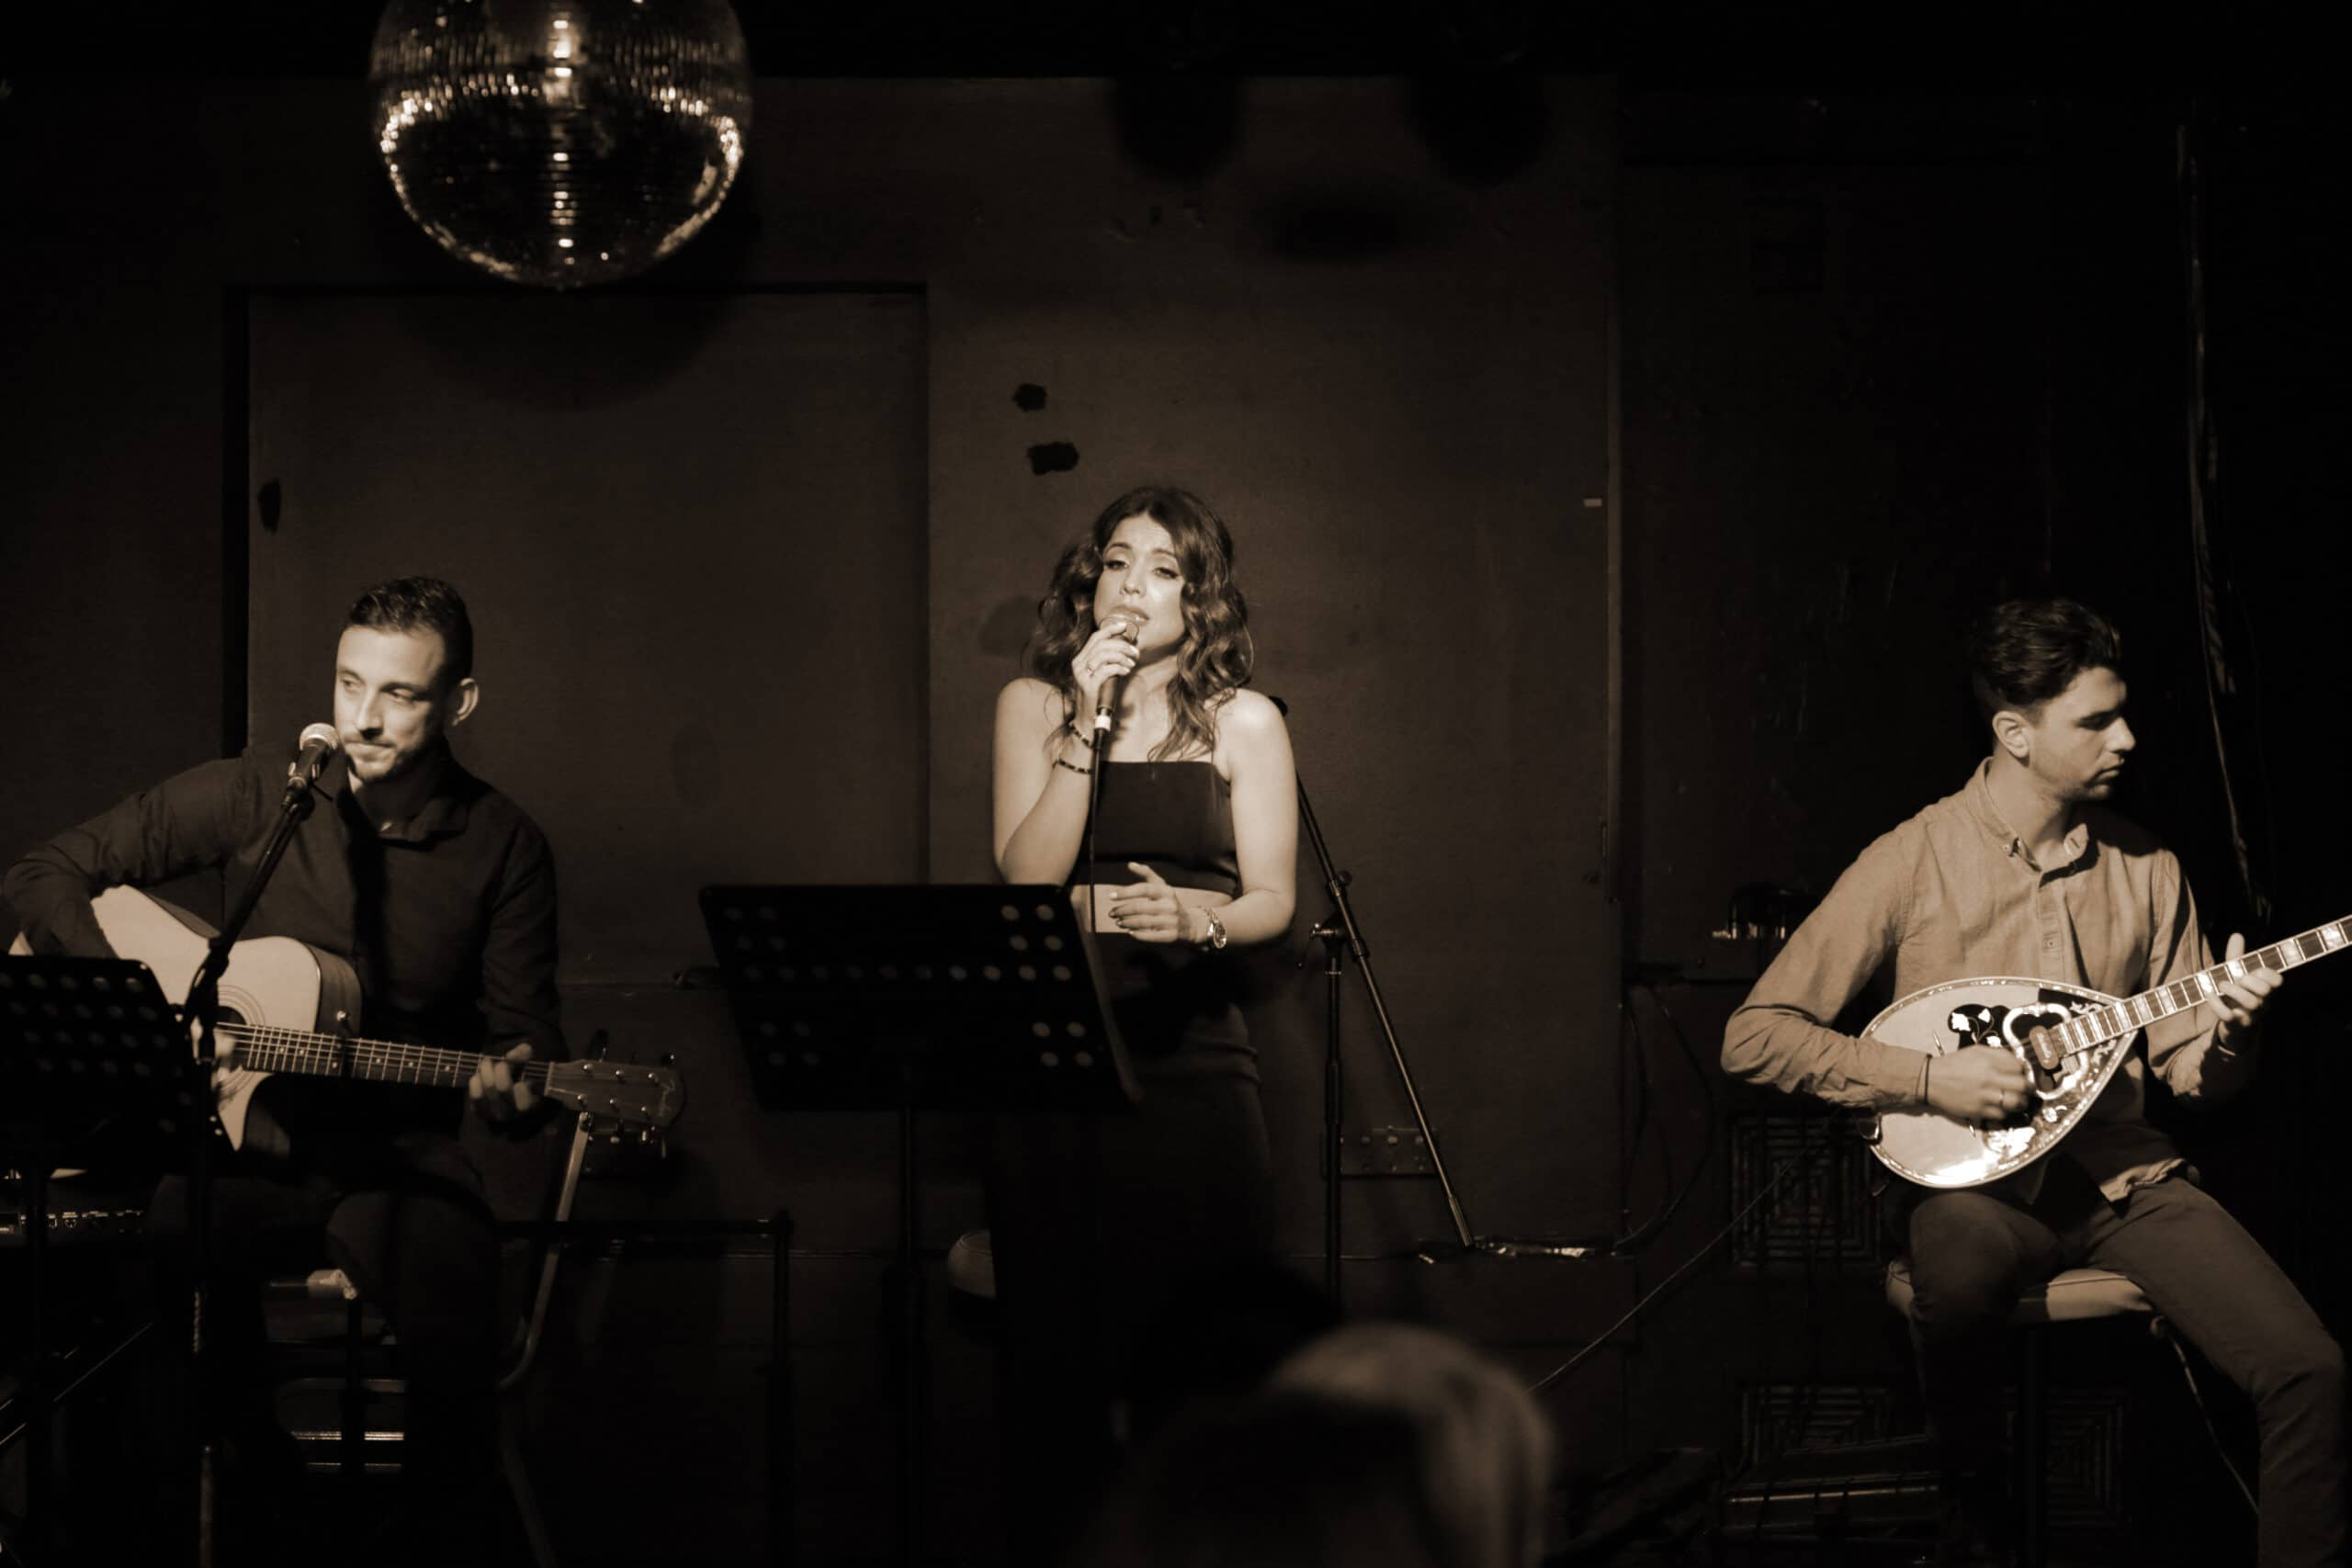 A Night at the Old Boite (μπουάτ) 43